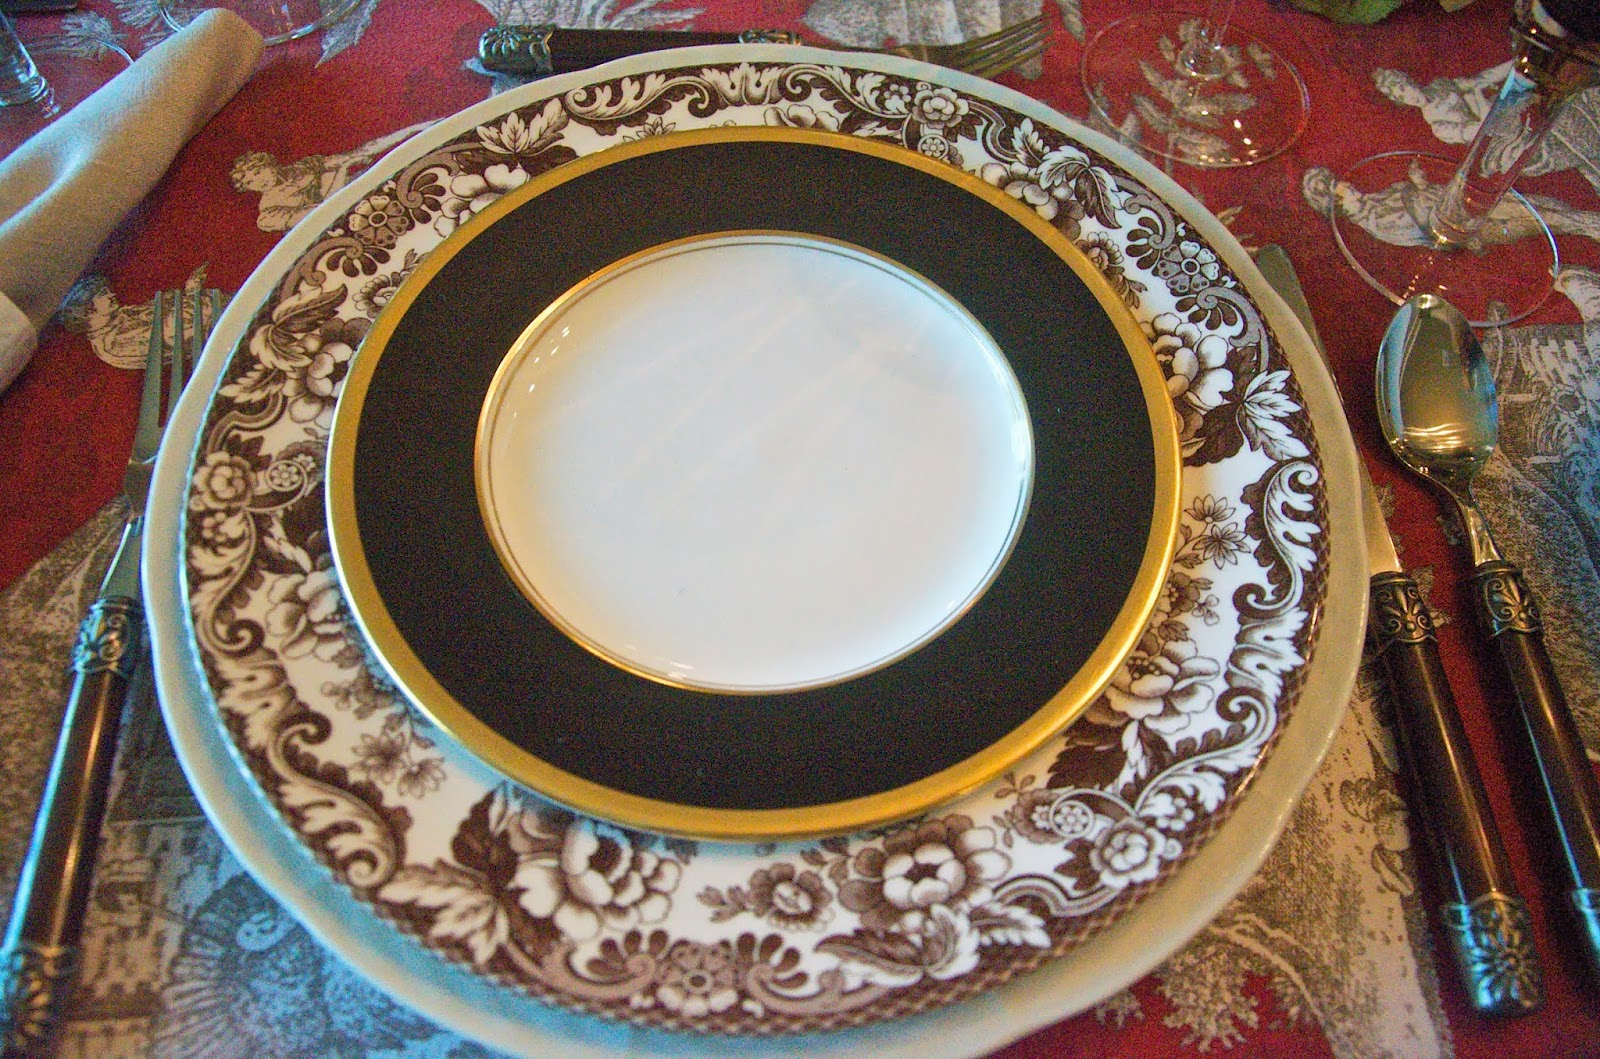 You might be familiar with the Woodland Spode pattern. The Delamere is the same plate minus the animals in the center. & Entertaining Women: Whatu0027s Brown and White and Red All Over?